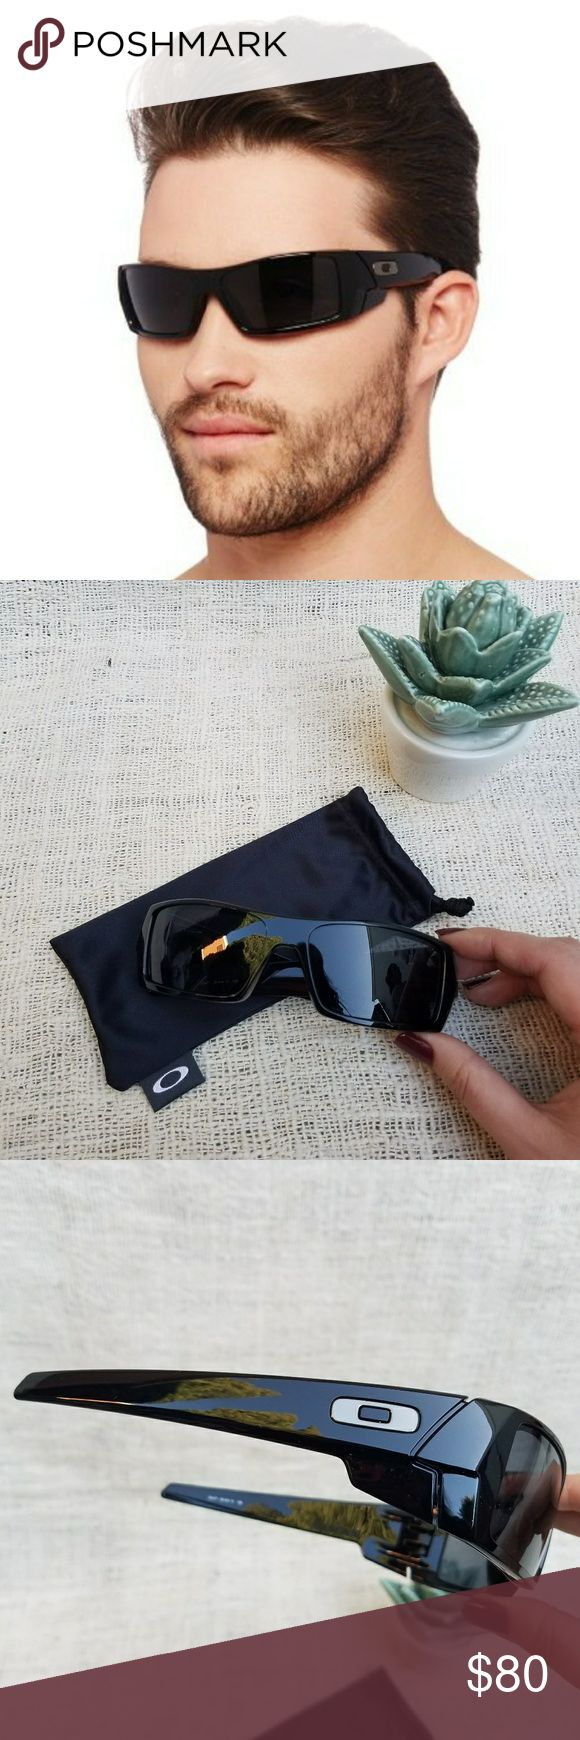 New Oakley Gascan Polished Black Sunglasses Inspired by the street glory of speed machines, Oakley® design language did a complete 180 in 2005. We traded soft curves for straight edges and hard lines to sculpt our very first high-wrap lifestyle shades. The toric lens design became known as Gascan® and it spawned an aesthetic so new and original, we customized our corporate logo for the frame.  New with microbag. Not polarized. Polished black frames with High Definition Optics (HDO) grey…